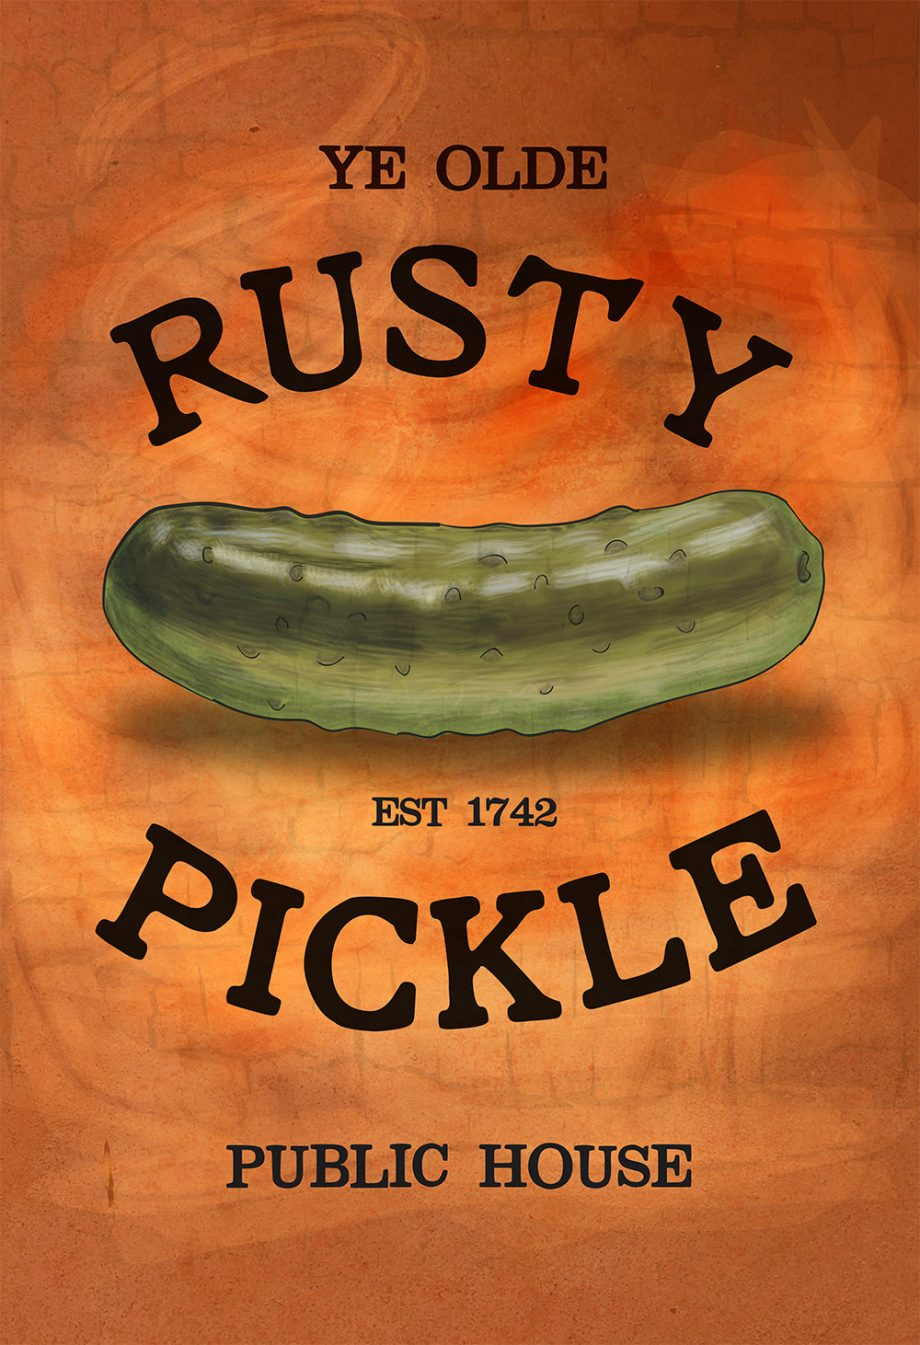 Rusty Pickle Original Illustration Pub Sign Giclee Print on Cotton Canvas and Paper Canvas Kitchen Rustic Bar Wall Decor